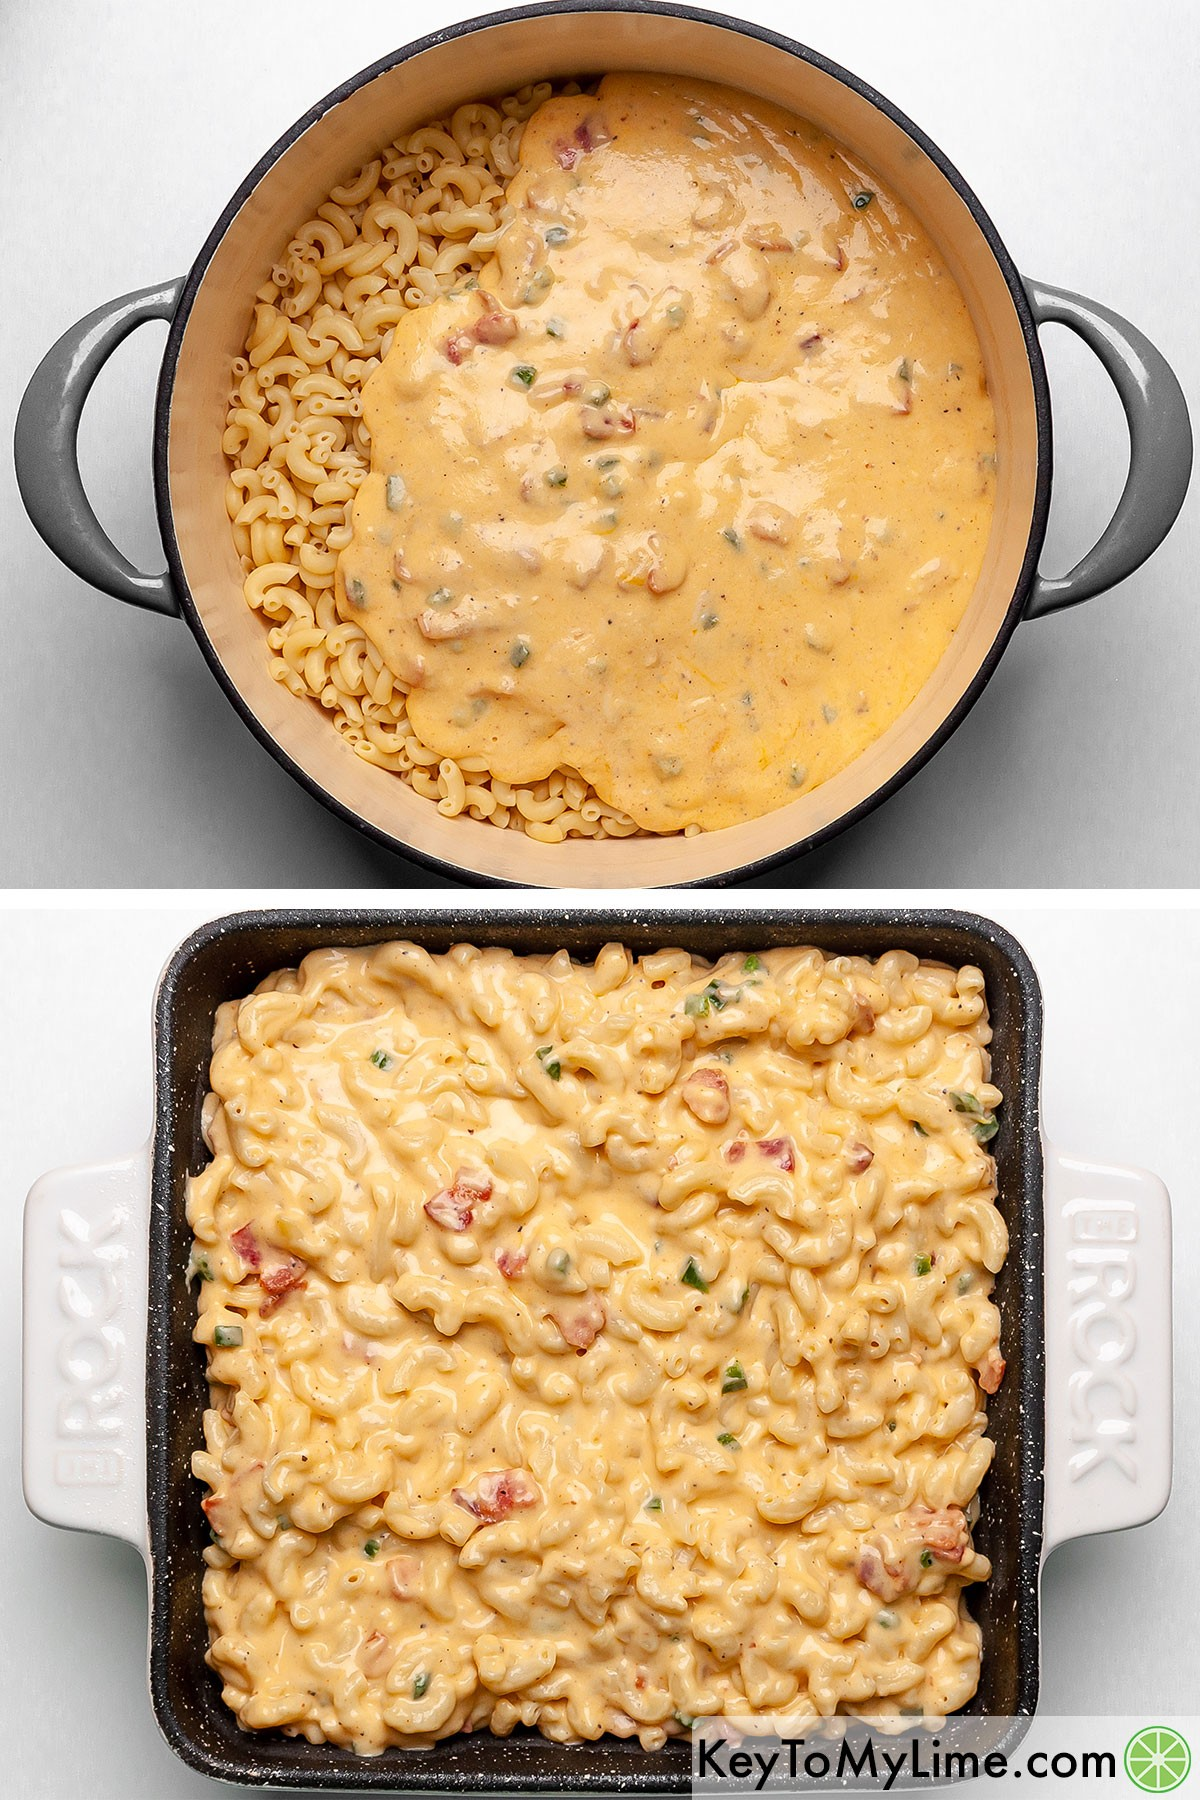 Tossing pasta with jalapeno bacon cheese sauce and then pouring it in a baking dish.